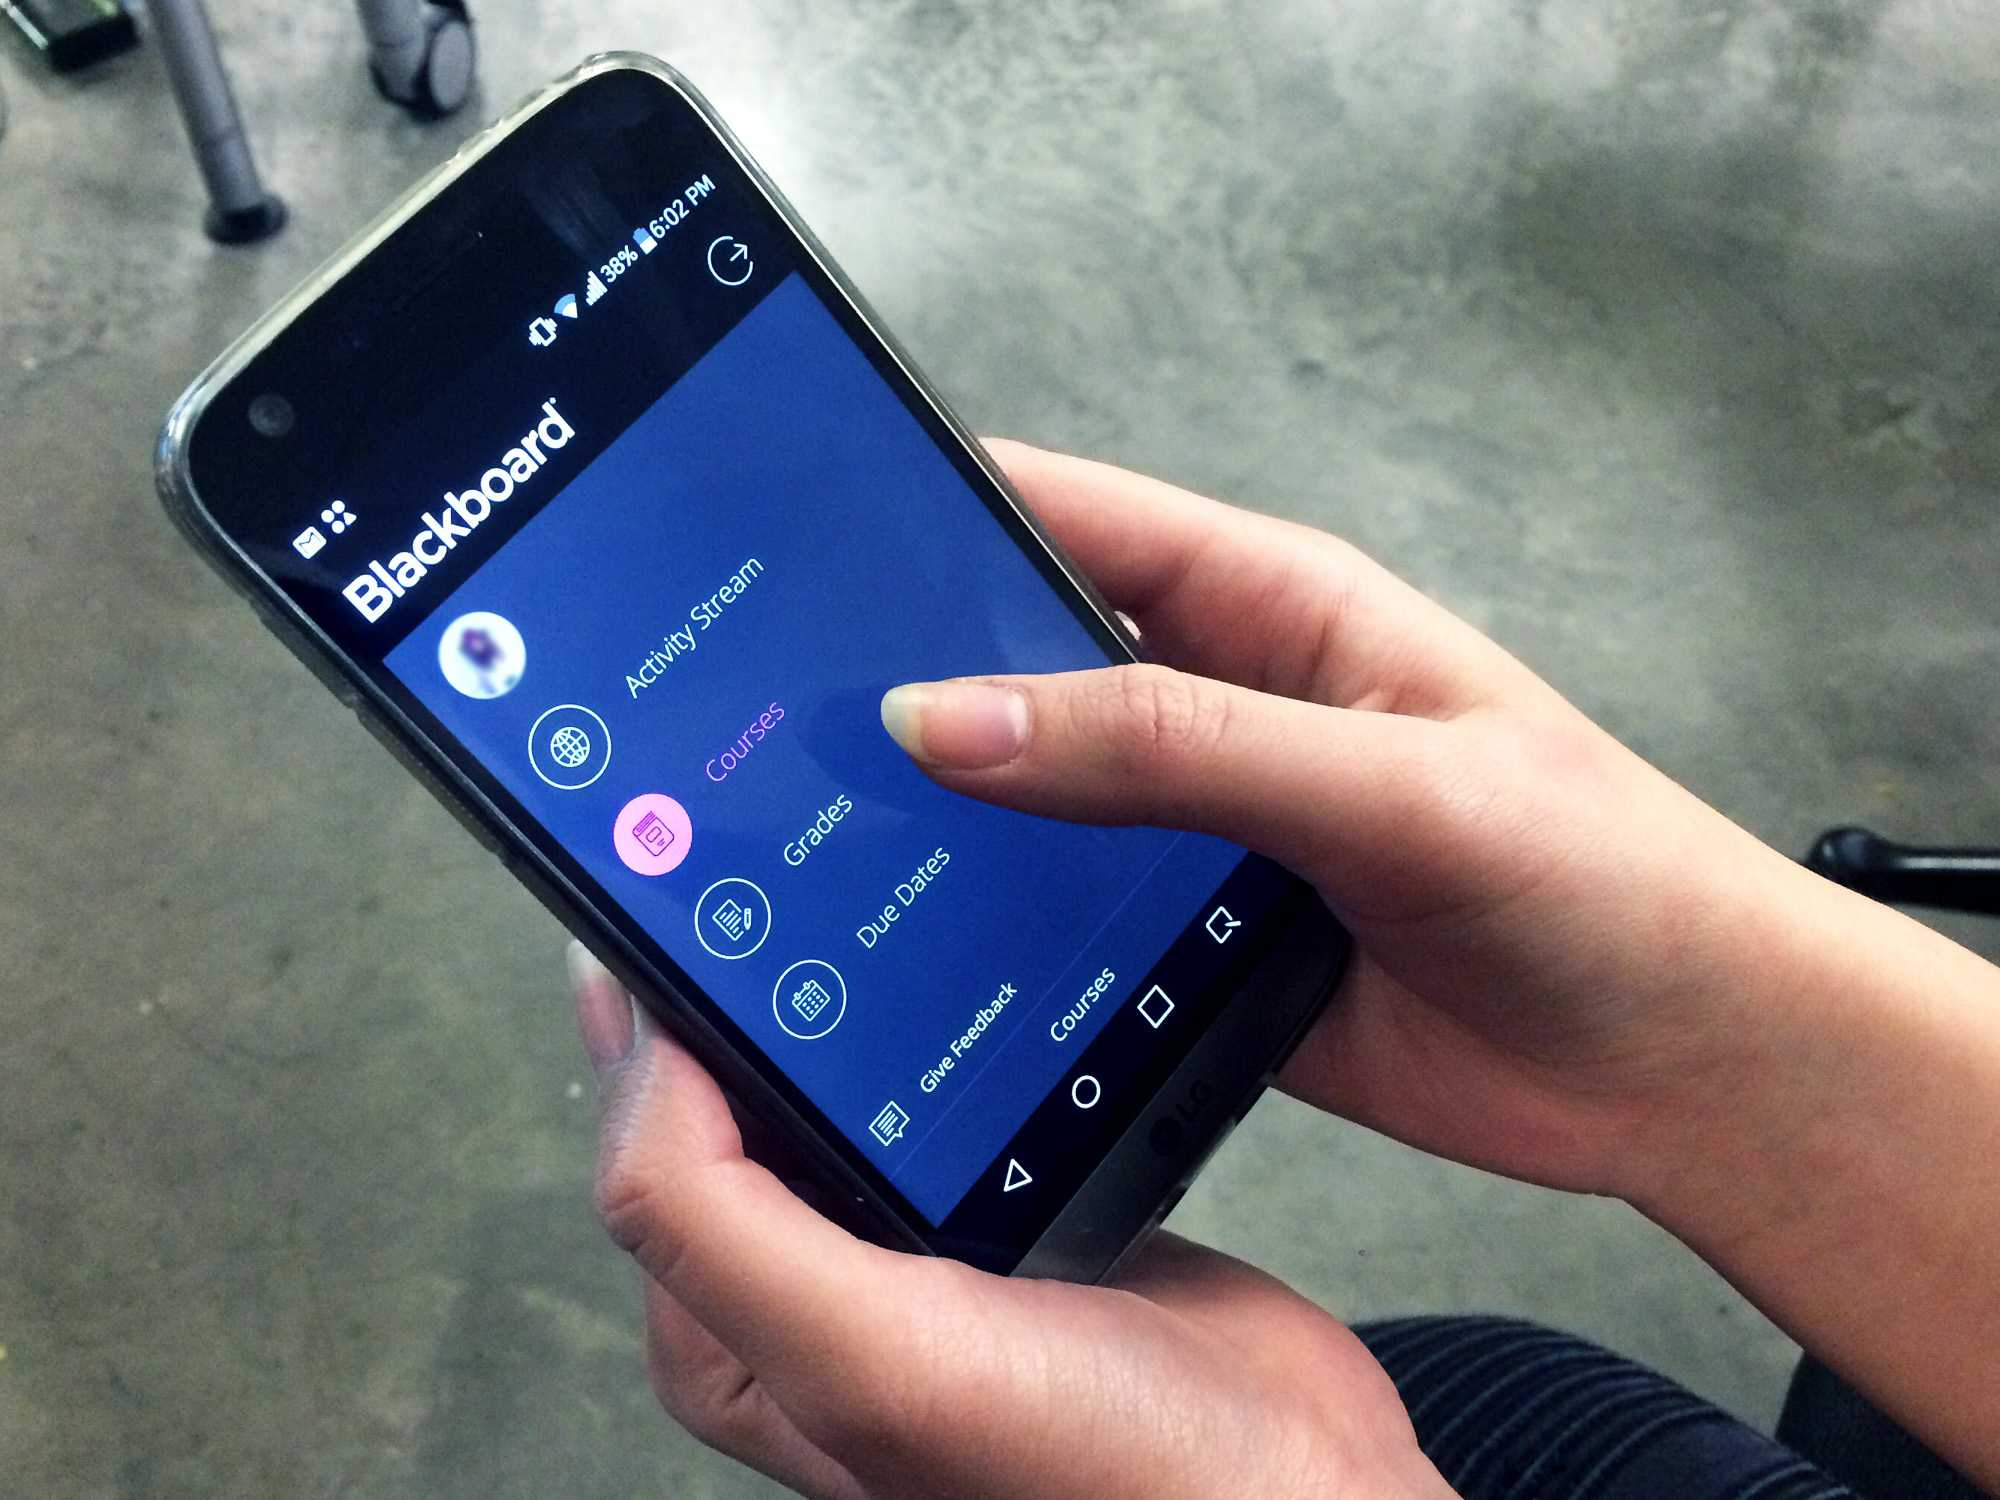 Students are encouraged to use the new Bb Student app, which will replace the old Blackboard app.